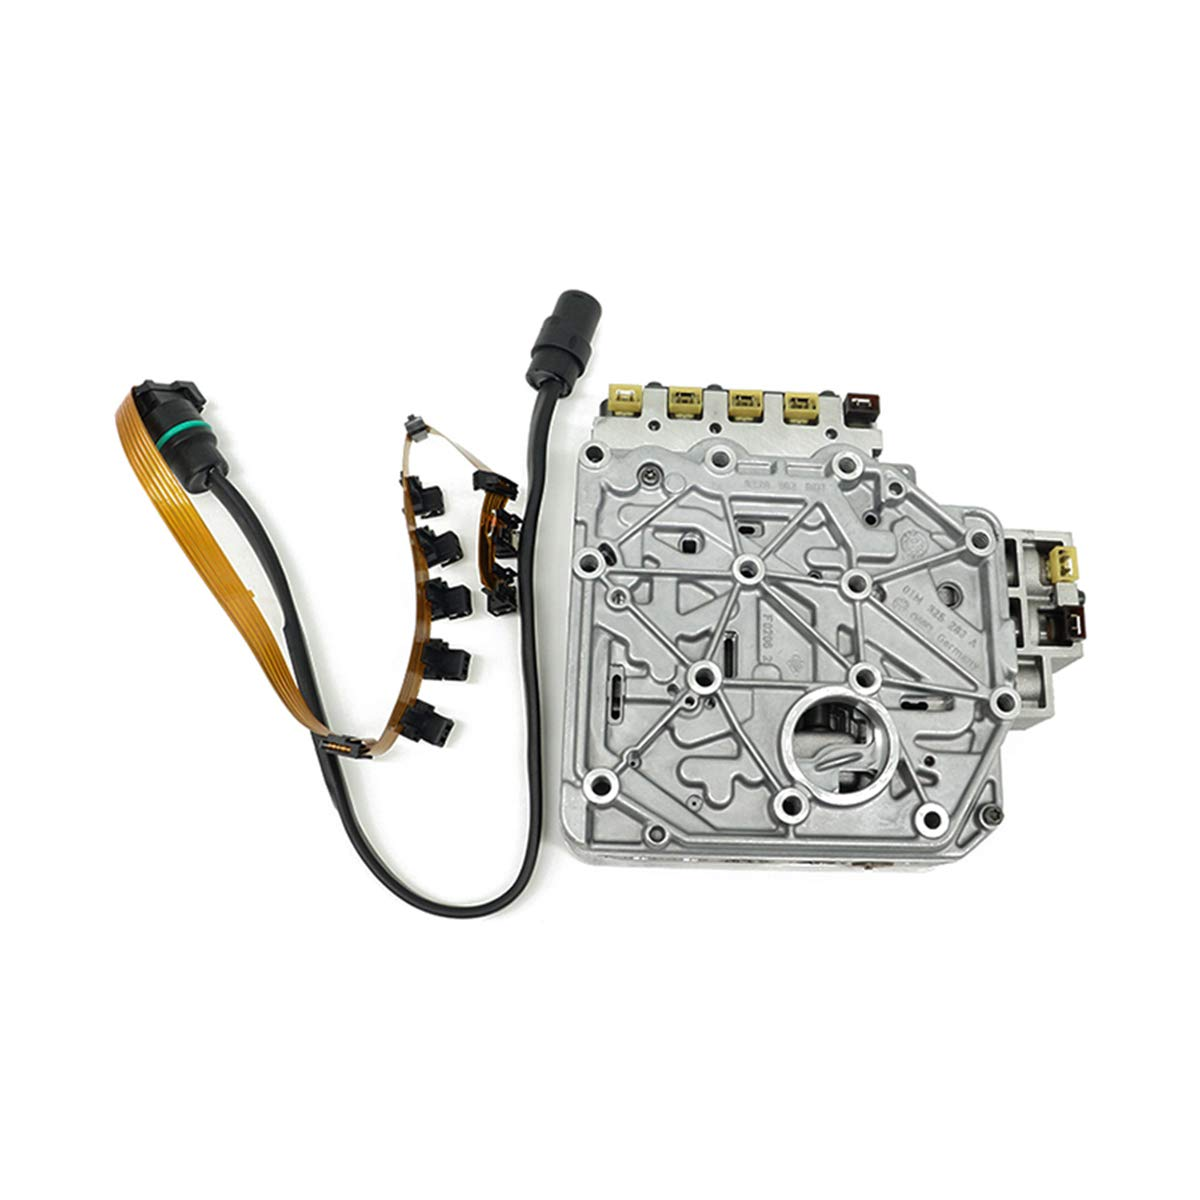 2003 Vw Beetle Alternator Wiring Harness